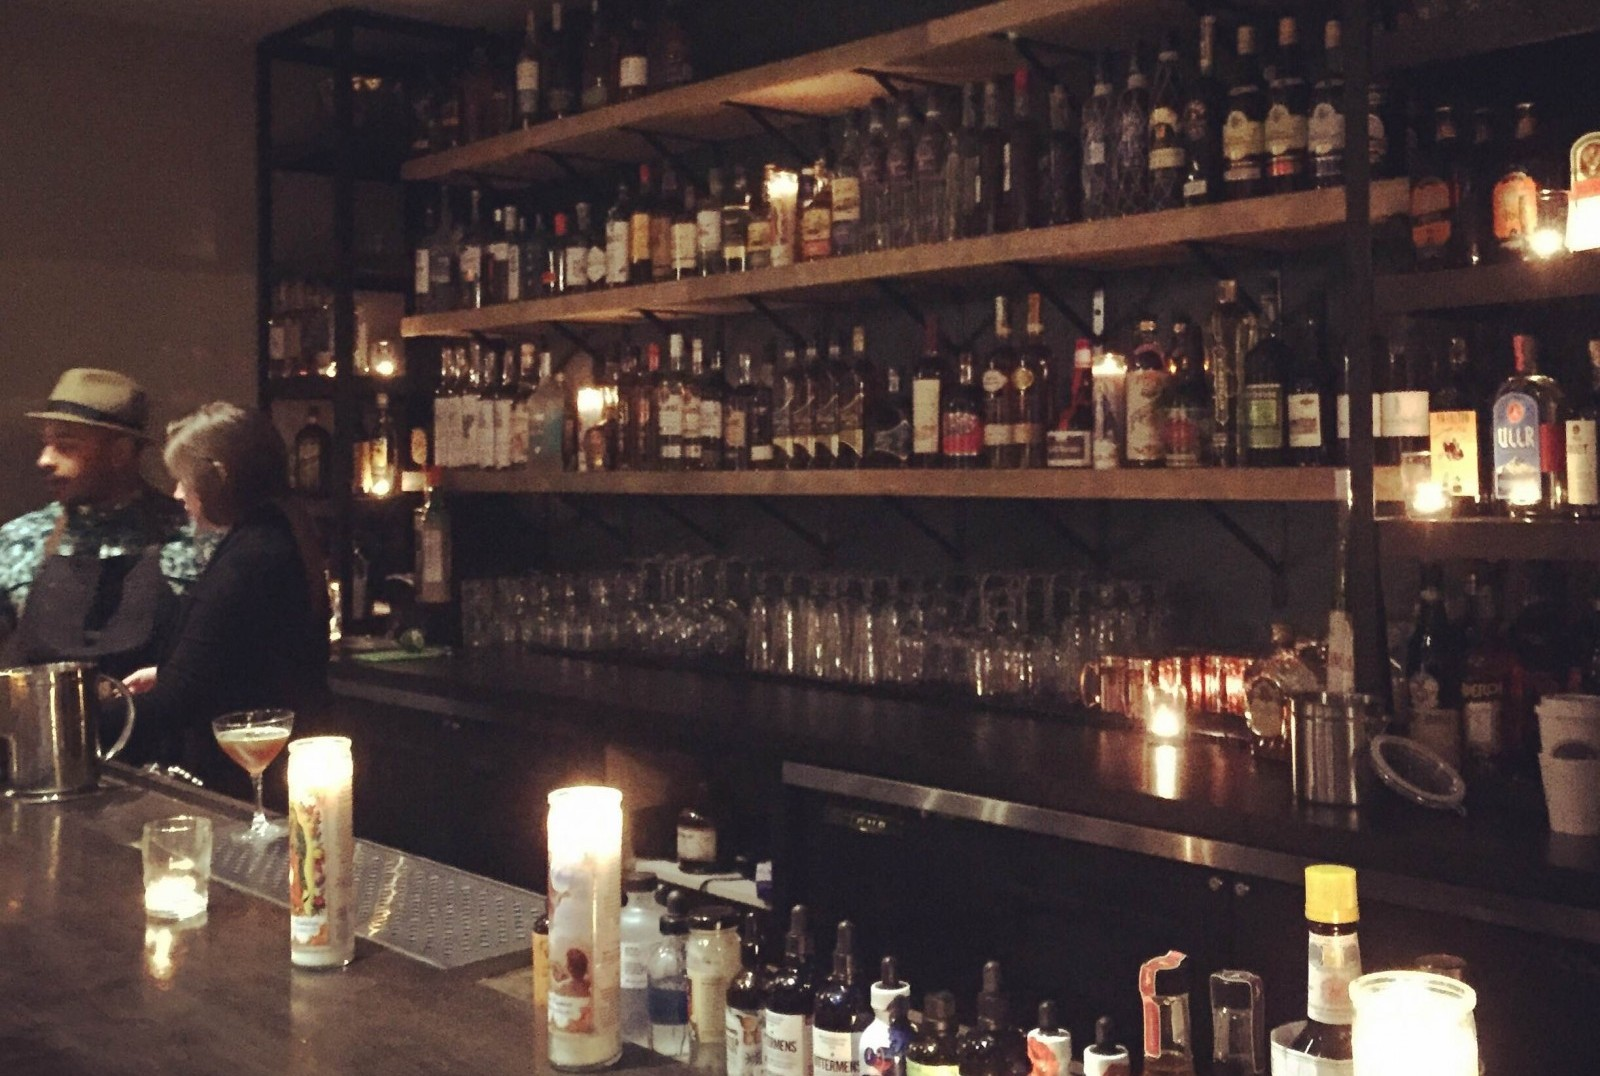 A look at the bar area for Pasion on Elmwood Avenue. (via Pasion)